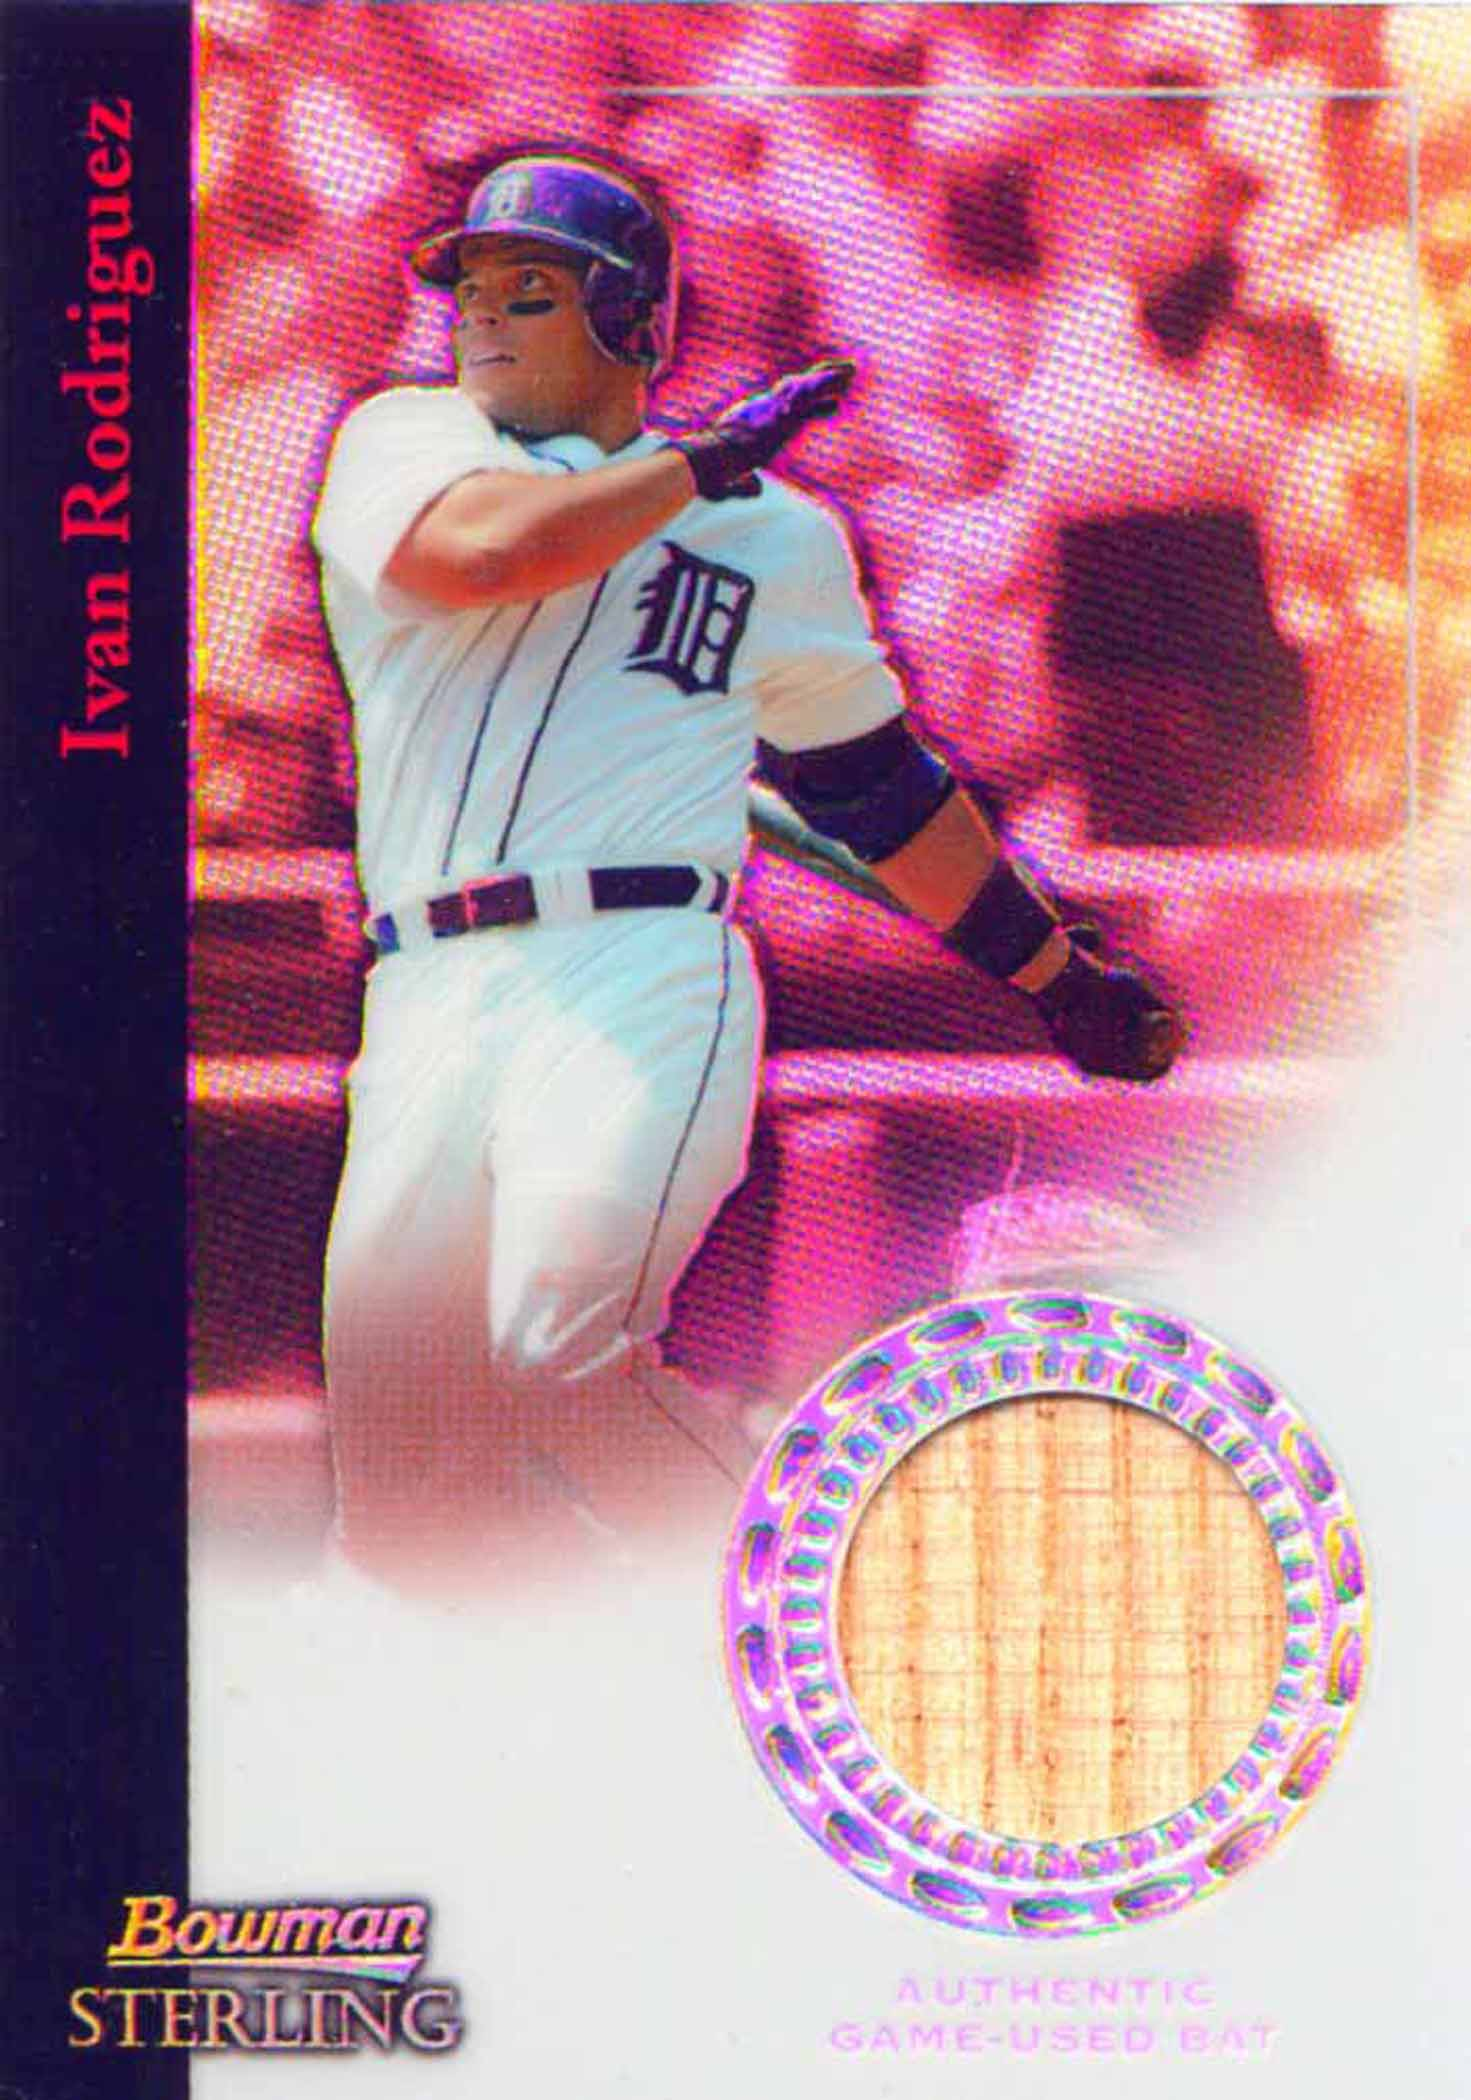 2004 Bowman Sterling Refractors Bat